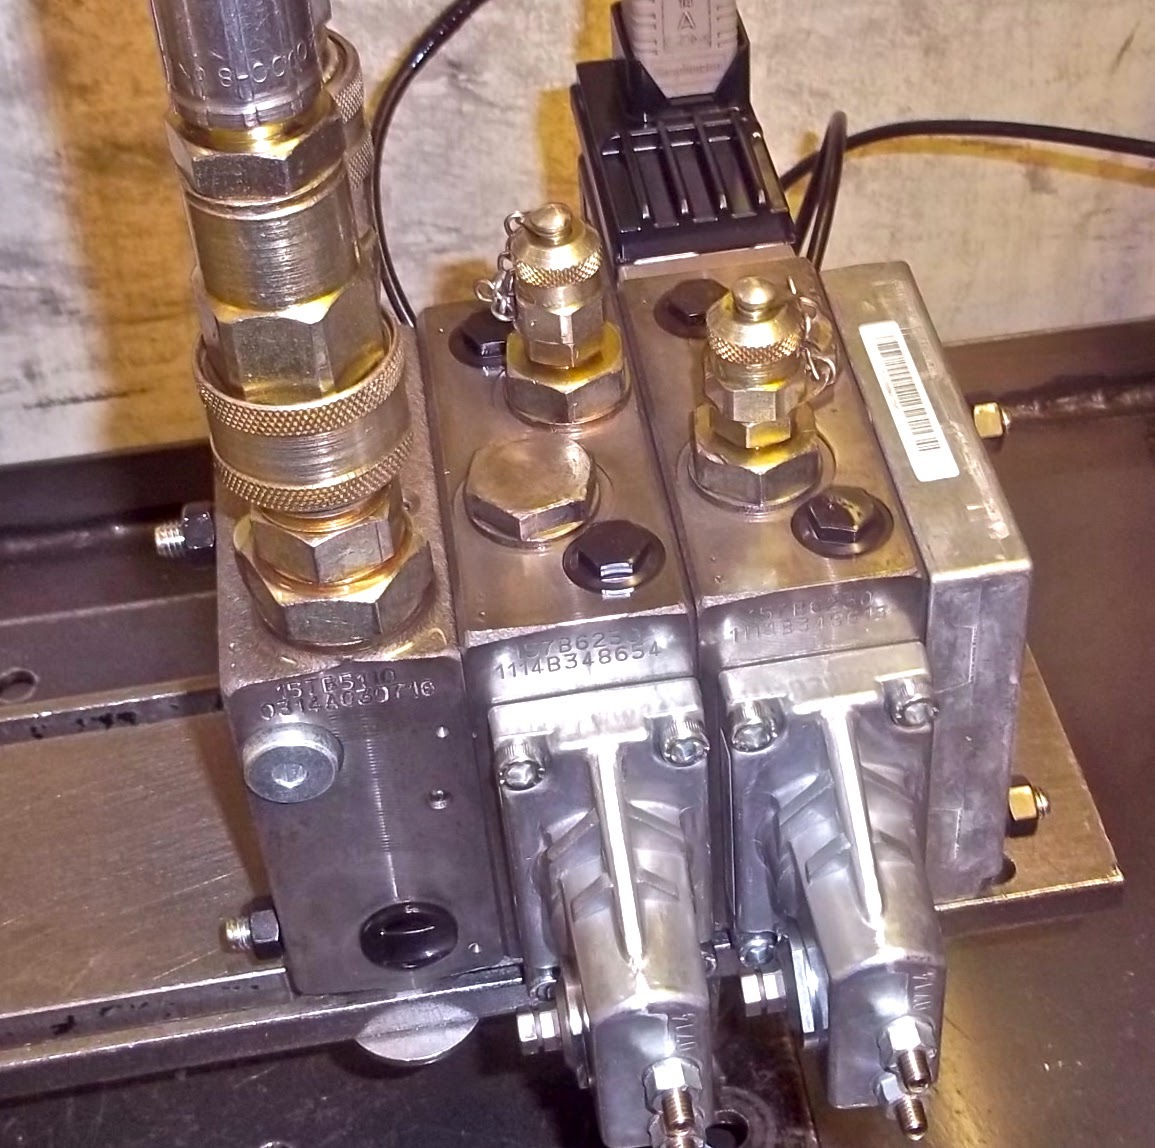 Danfoss PVG32 valve test